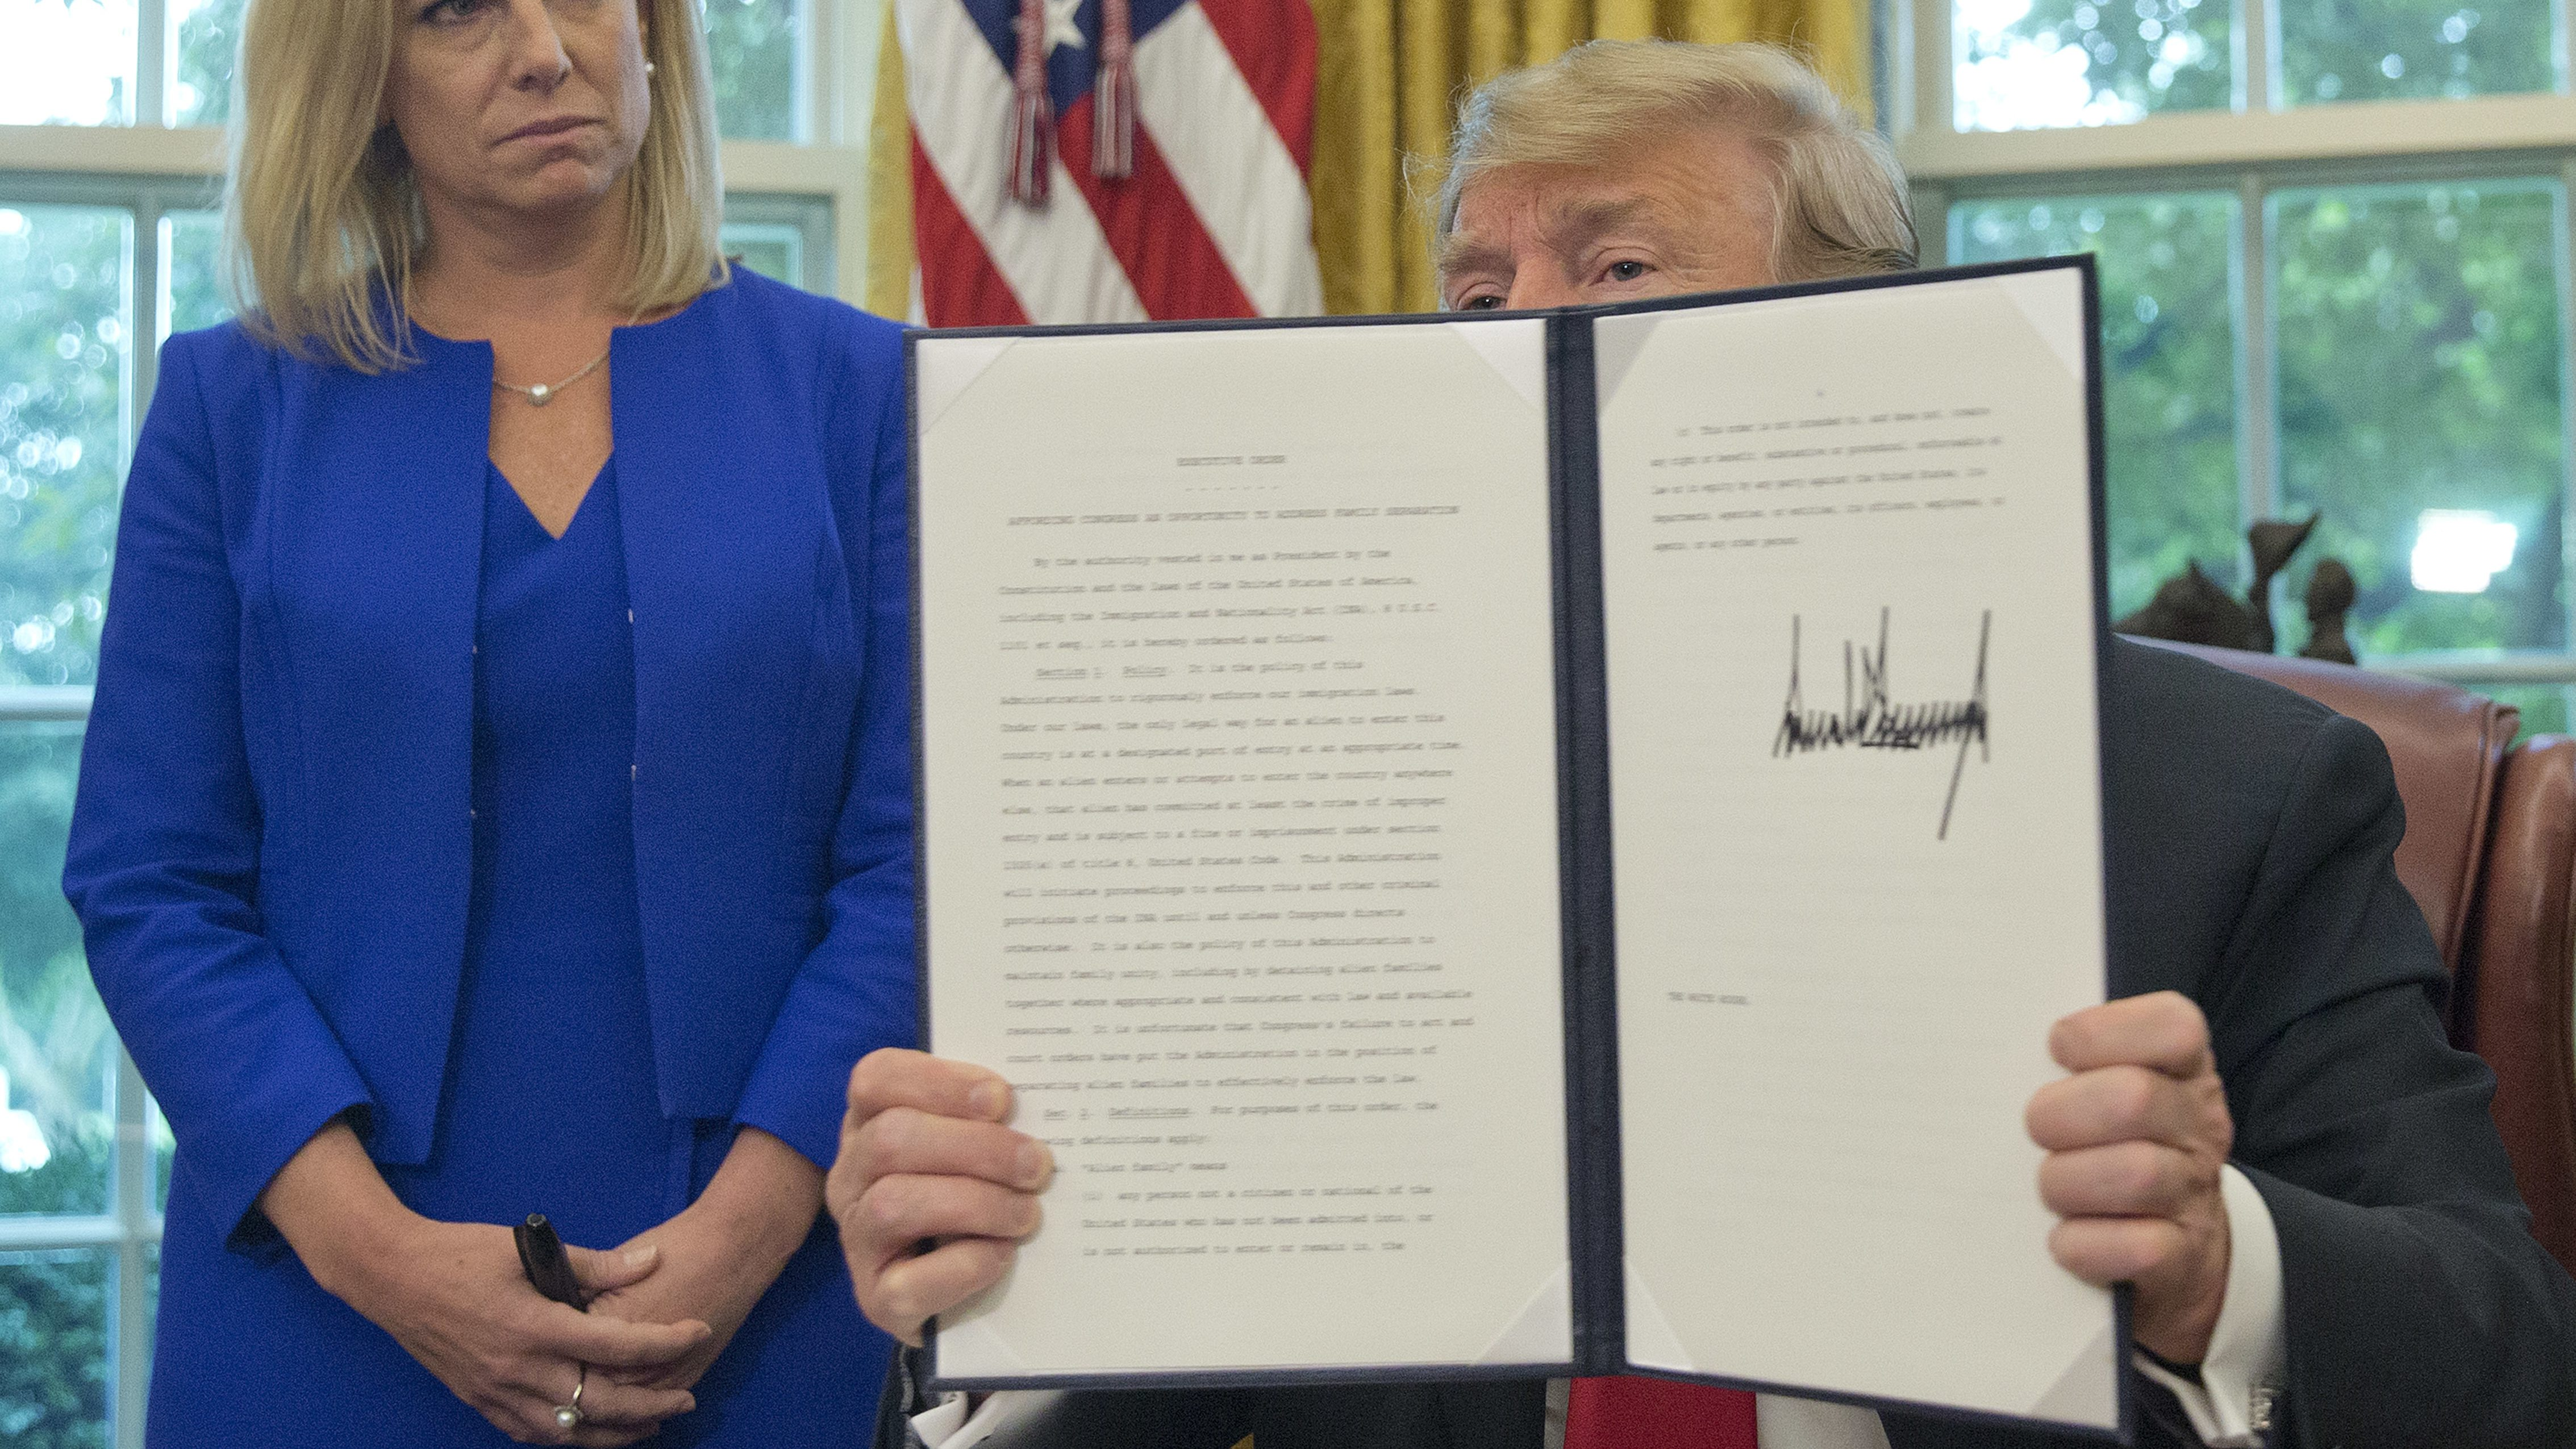 President Donald Trump holds up an executive order he signed to end family separations, during an event in the Oval Office of the White House in Washington, Wednesday, June 20, 2018. Looking on is Homeland Security Secretary Kirstjen Nielsen, left.